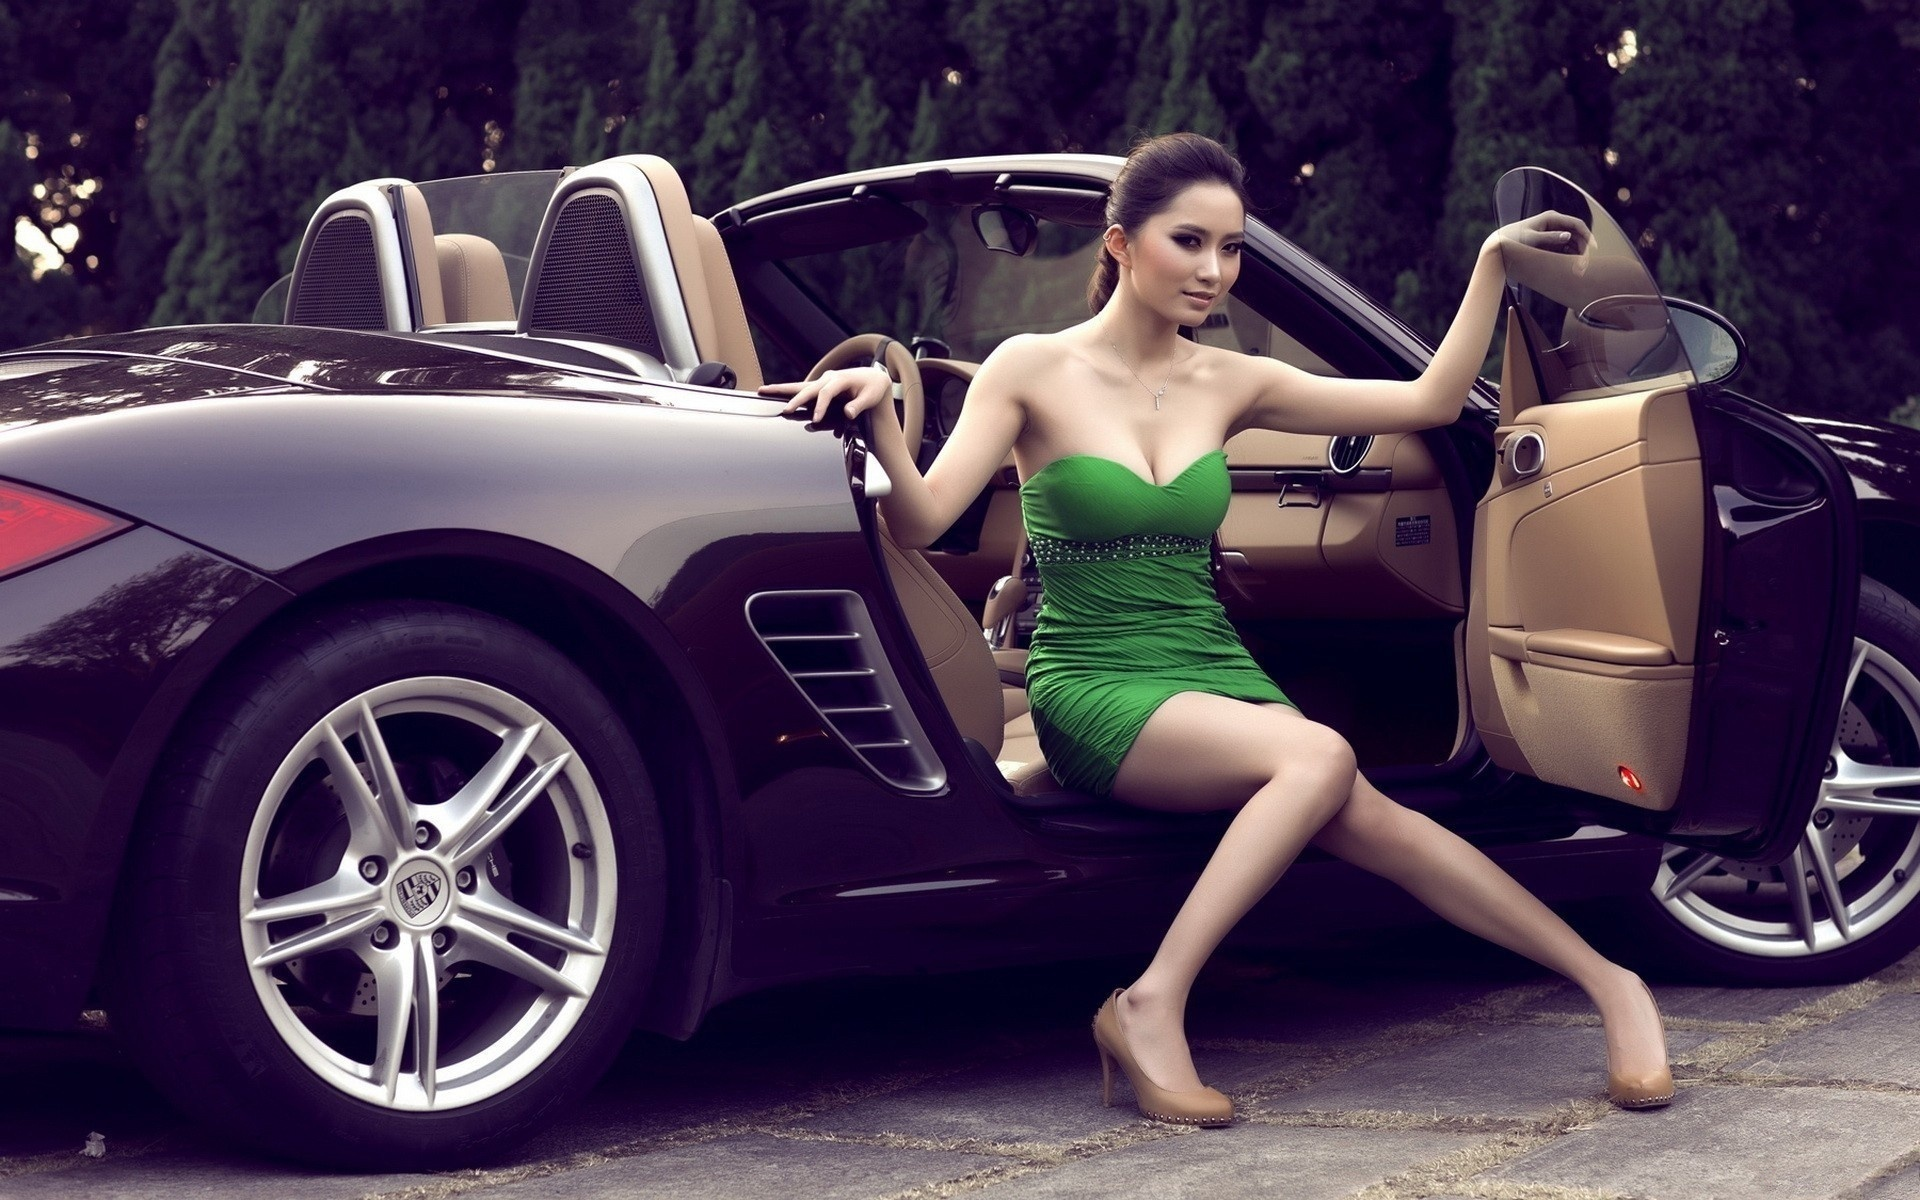 Girls And Stunning Cars Hd Wallpapers 2019 All Hd Wallpapers